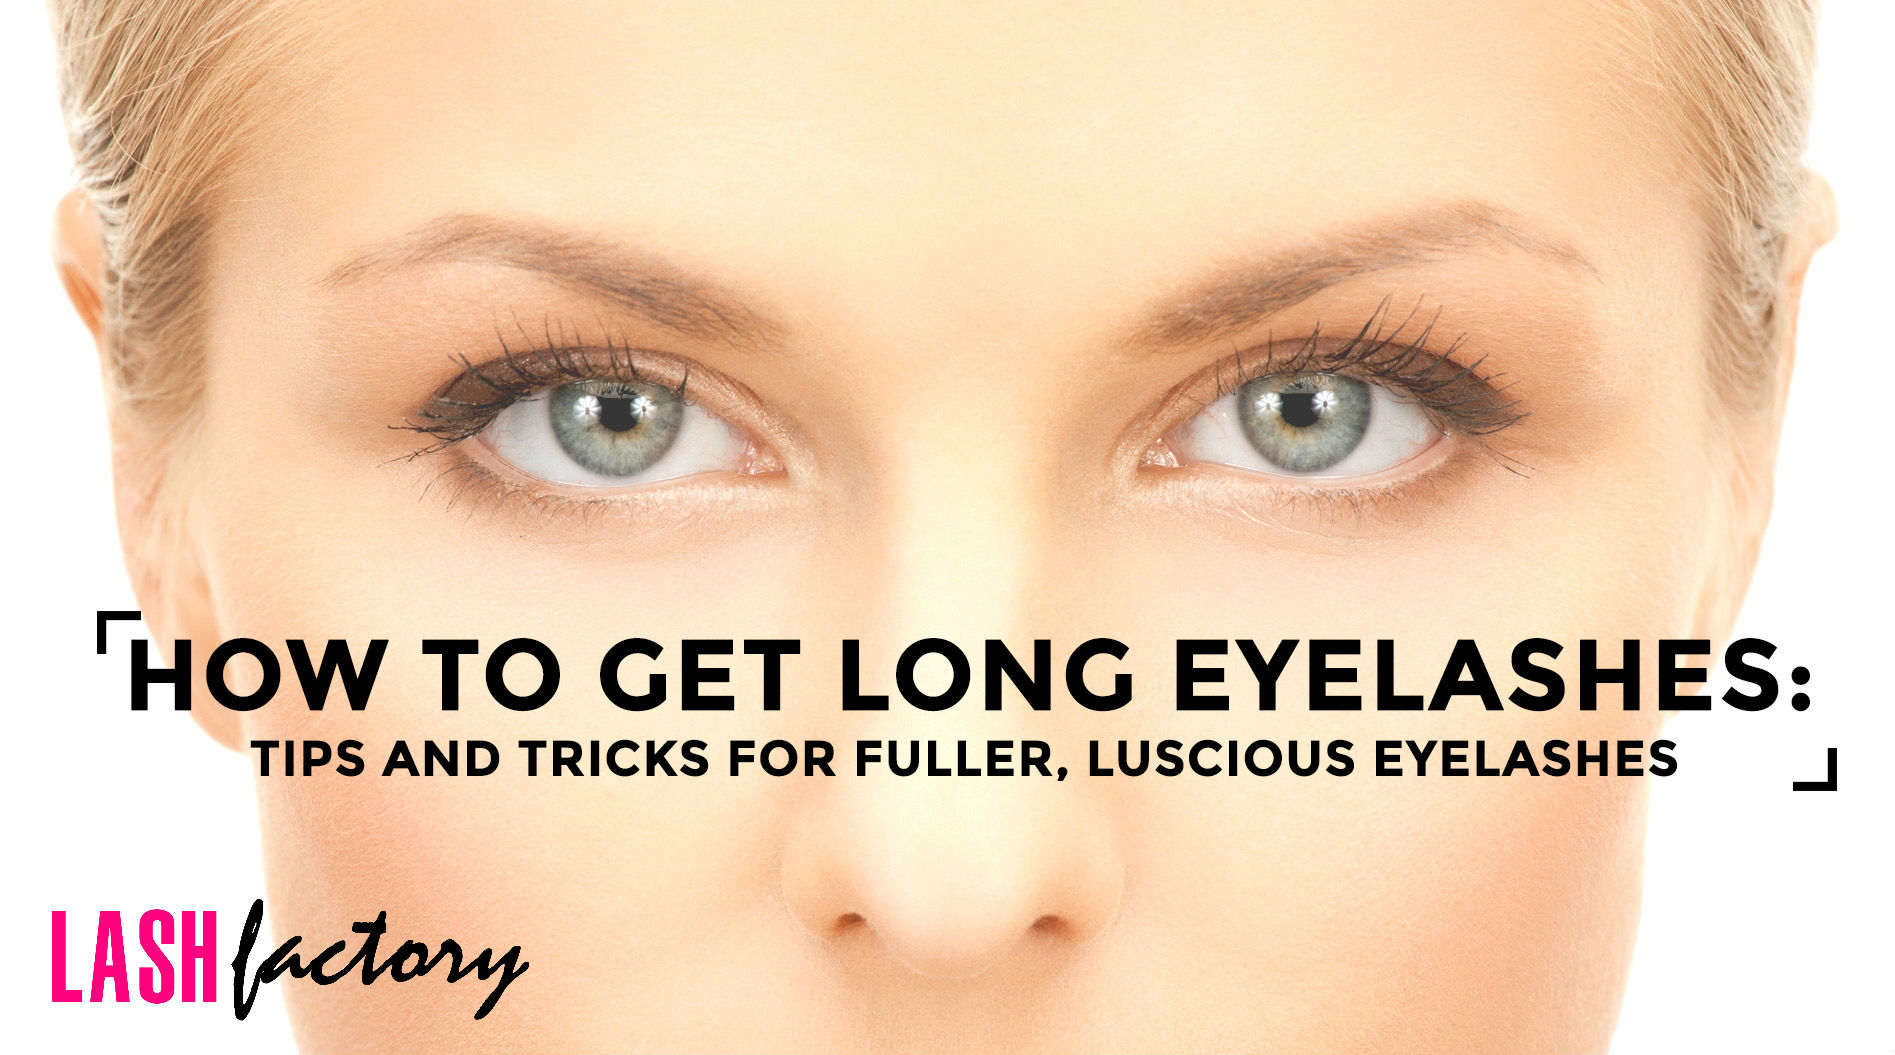 How to Get Long Eyelashes: Tips & Tricks for Luscious Lashes